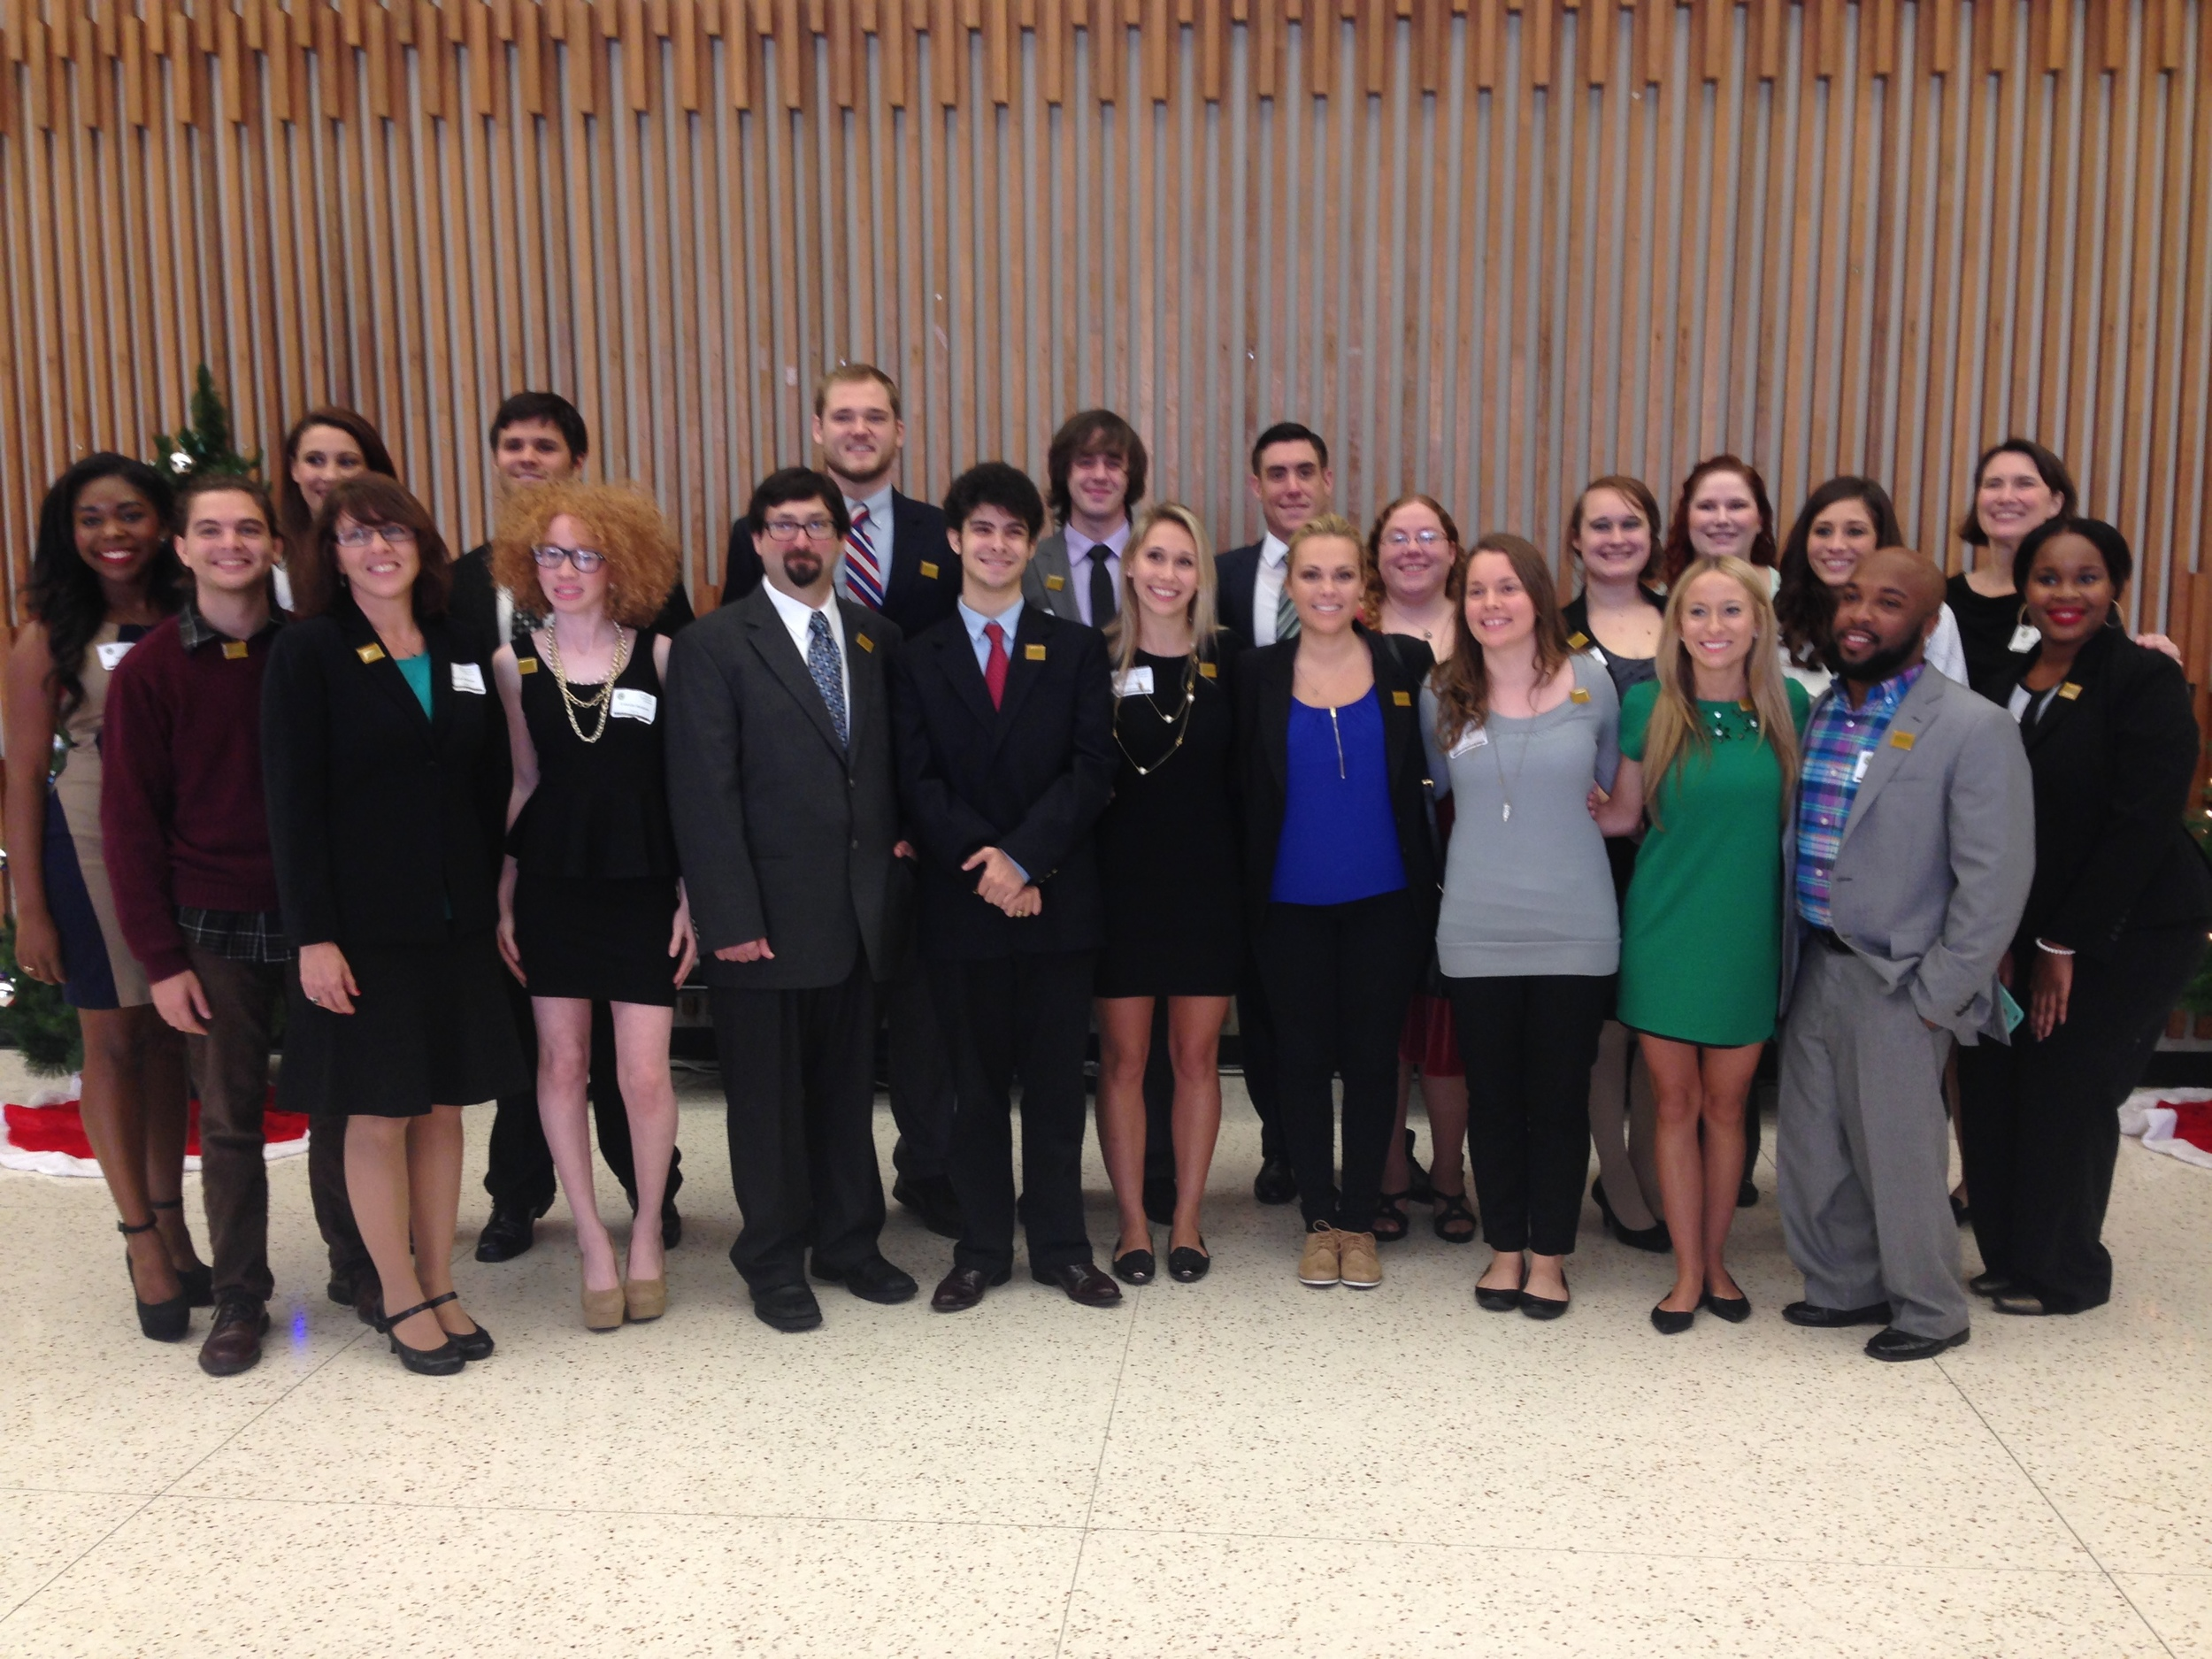 Fall 2014 Communication Graduates after presenting theses